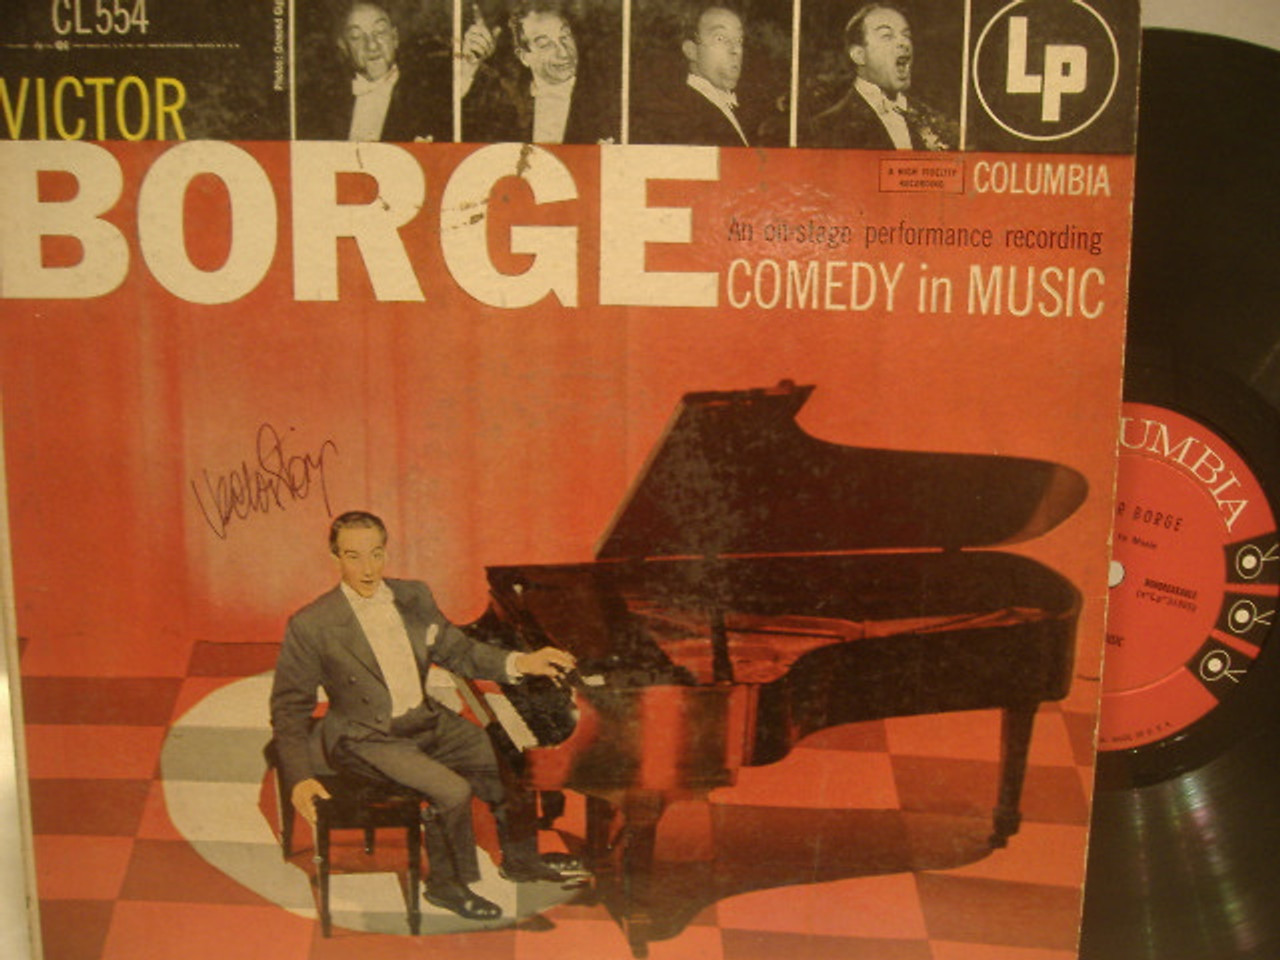 Borge, Victor LP Signed Autograph Comedy In Music